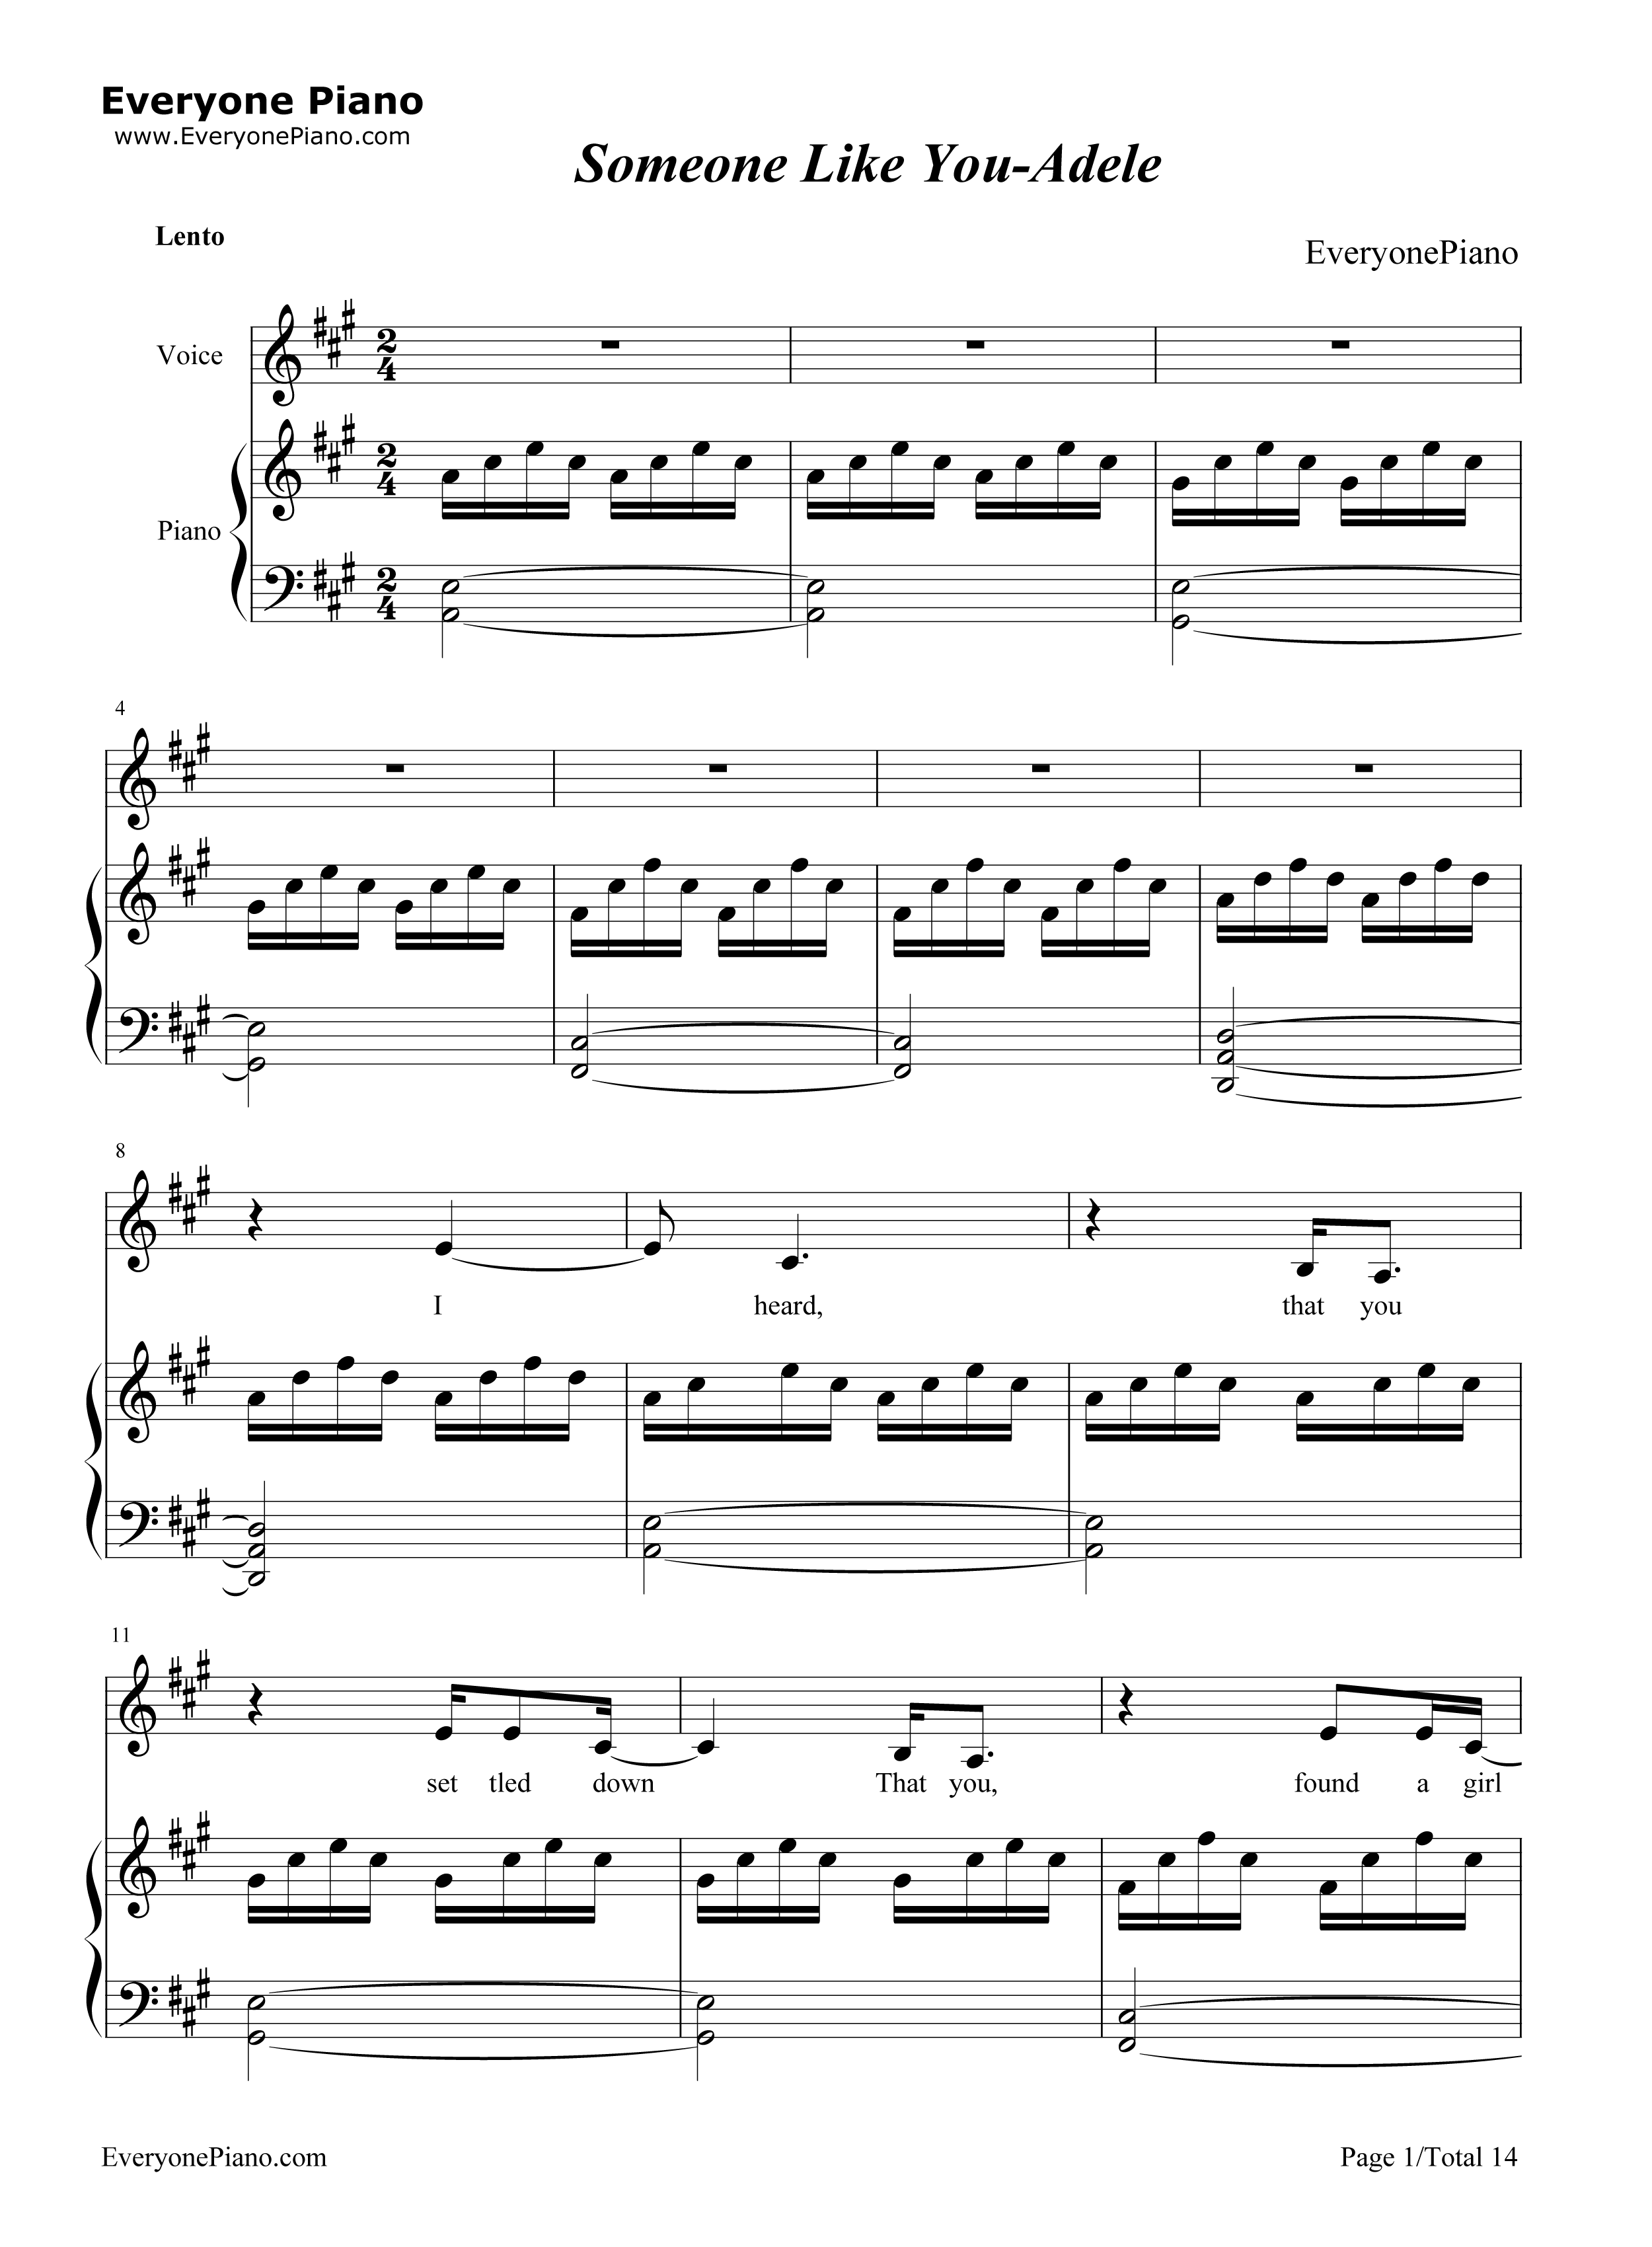 Someone like You Voice+Piano-Adele Stave Preview 1-Free Piano Sheet Music u0026 Piano Chords